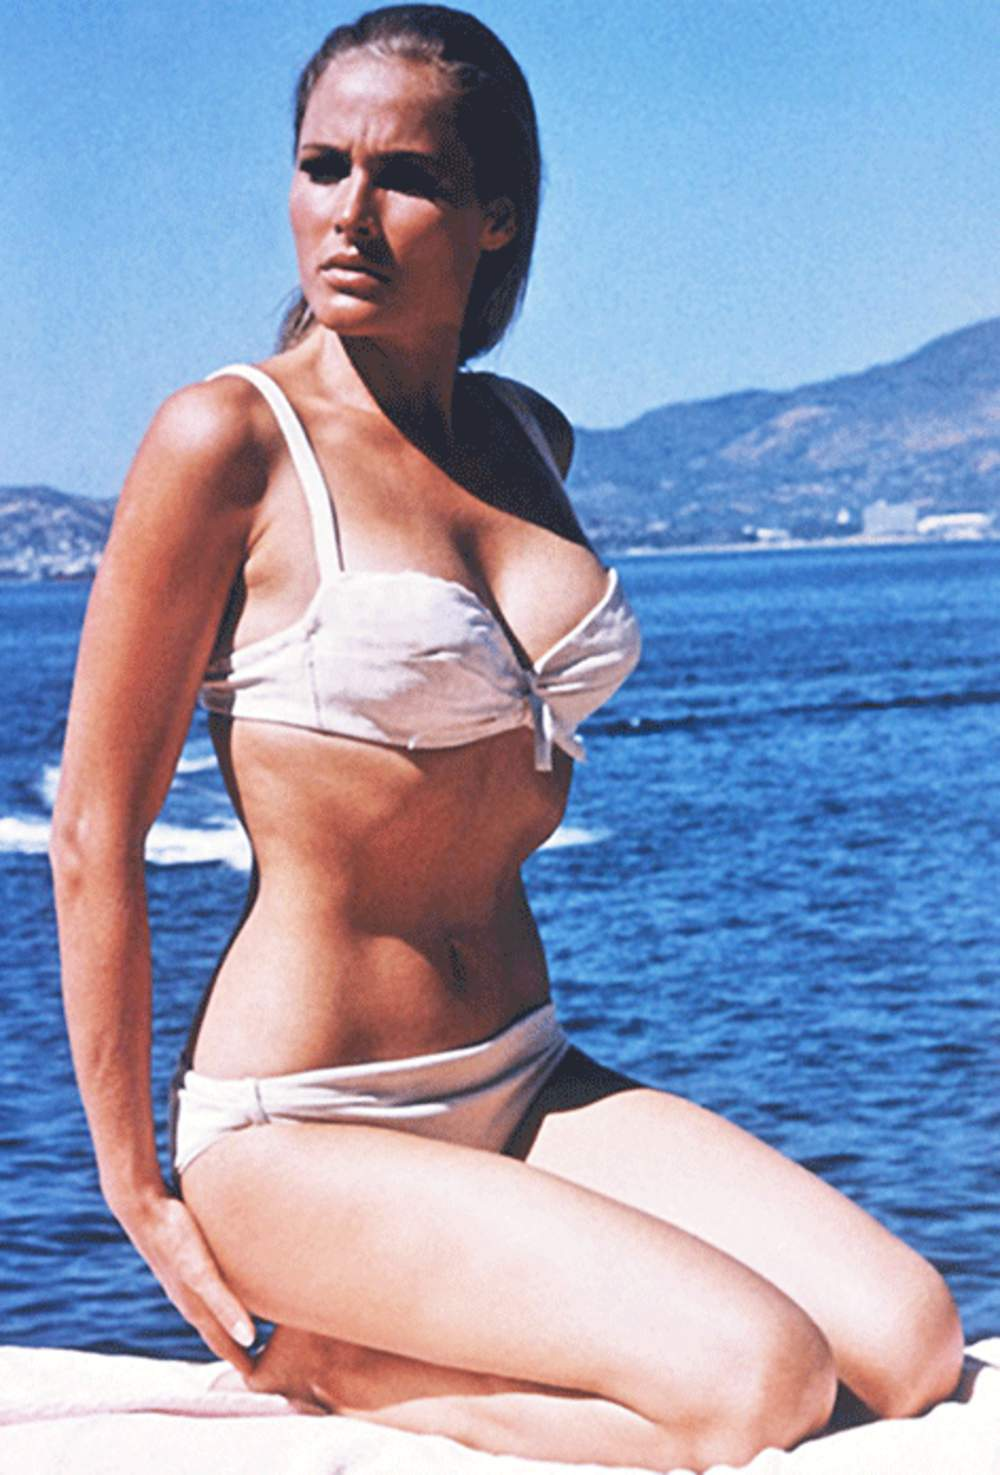 ursula-andress-young